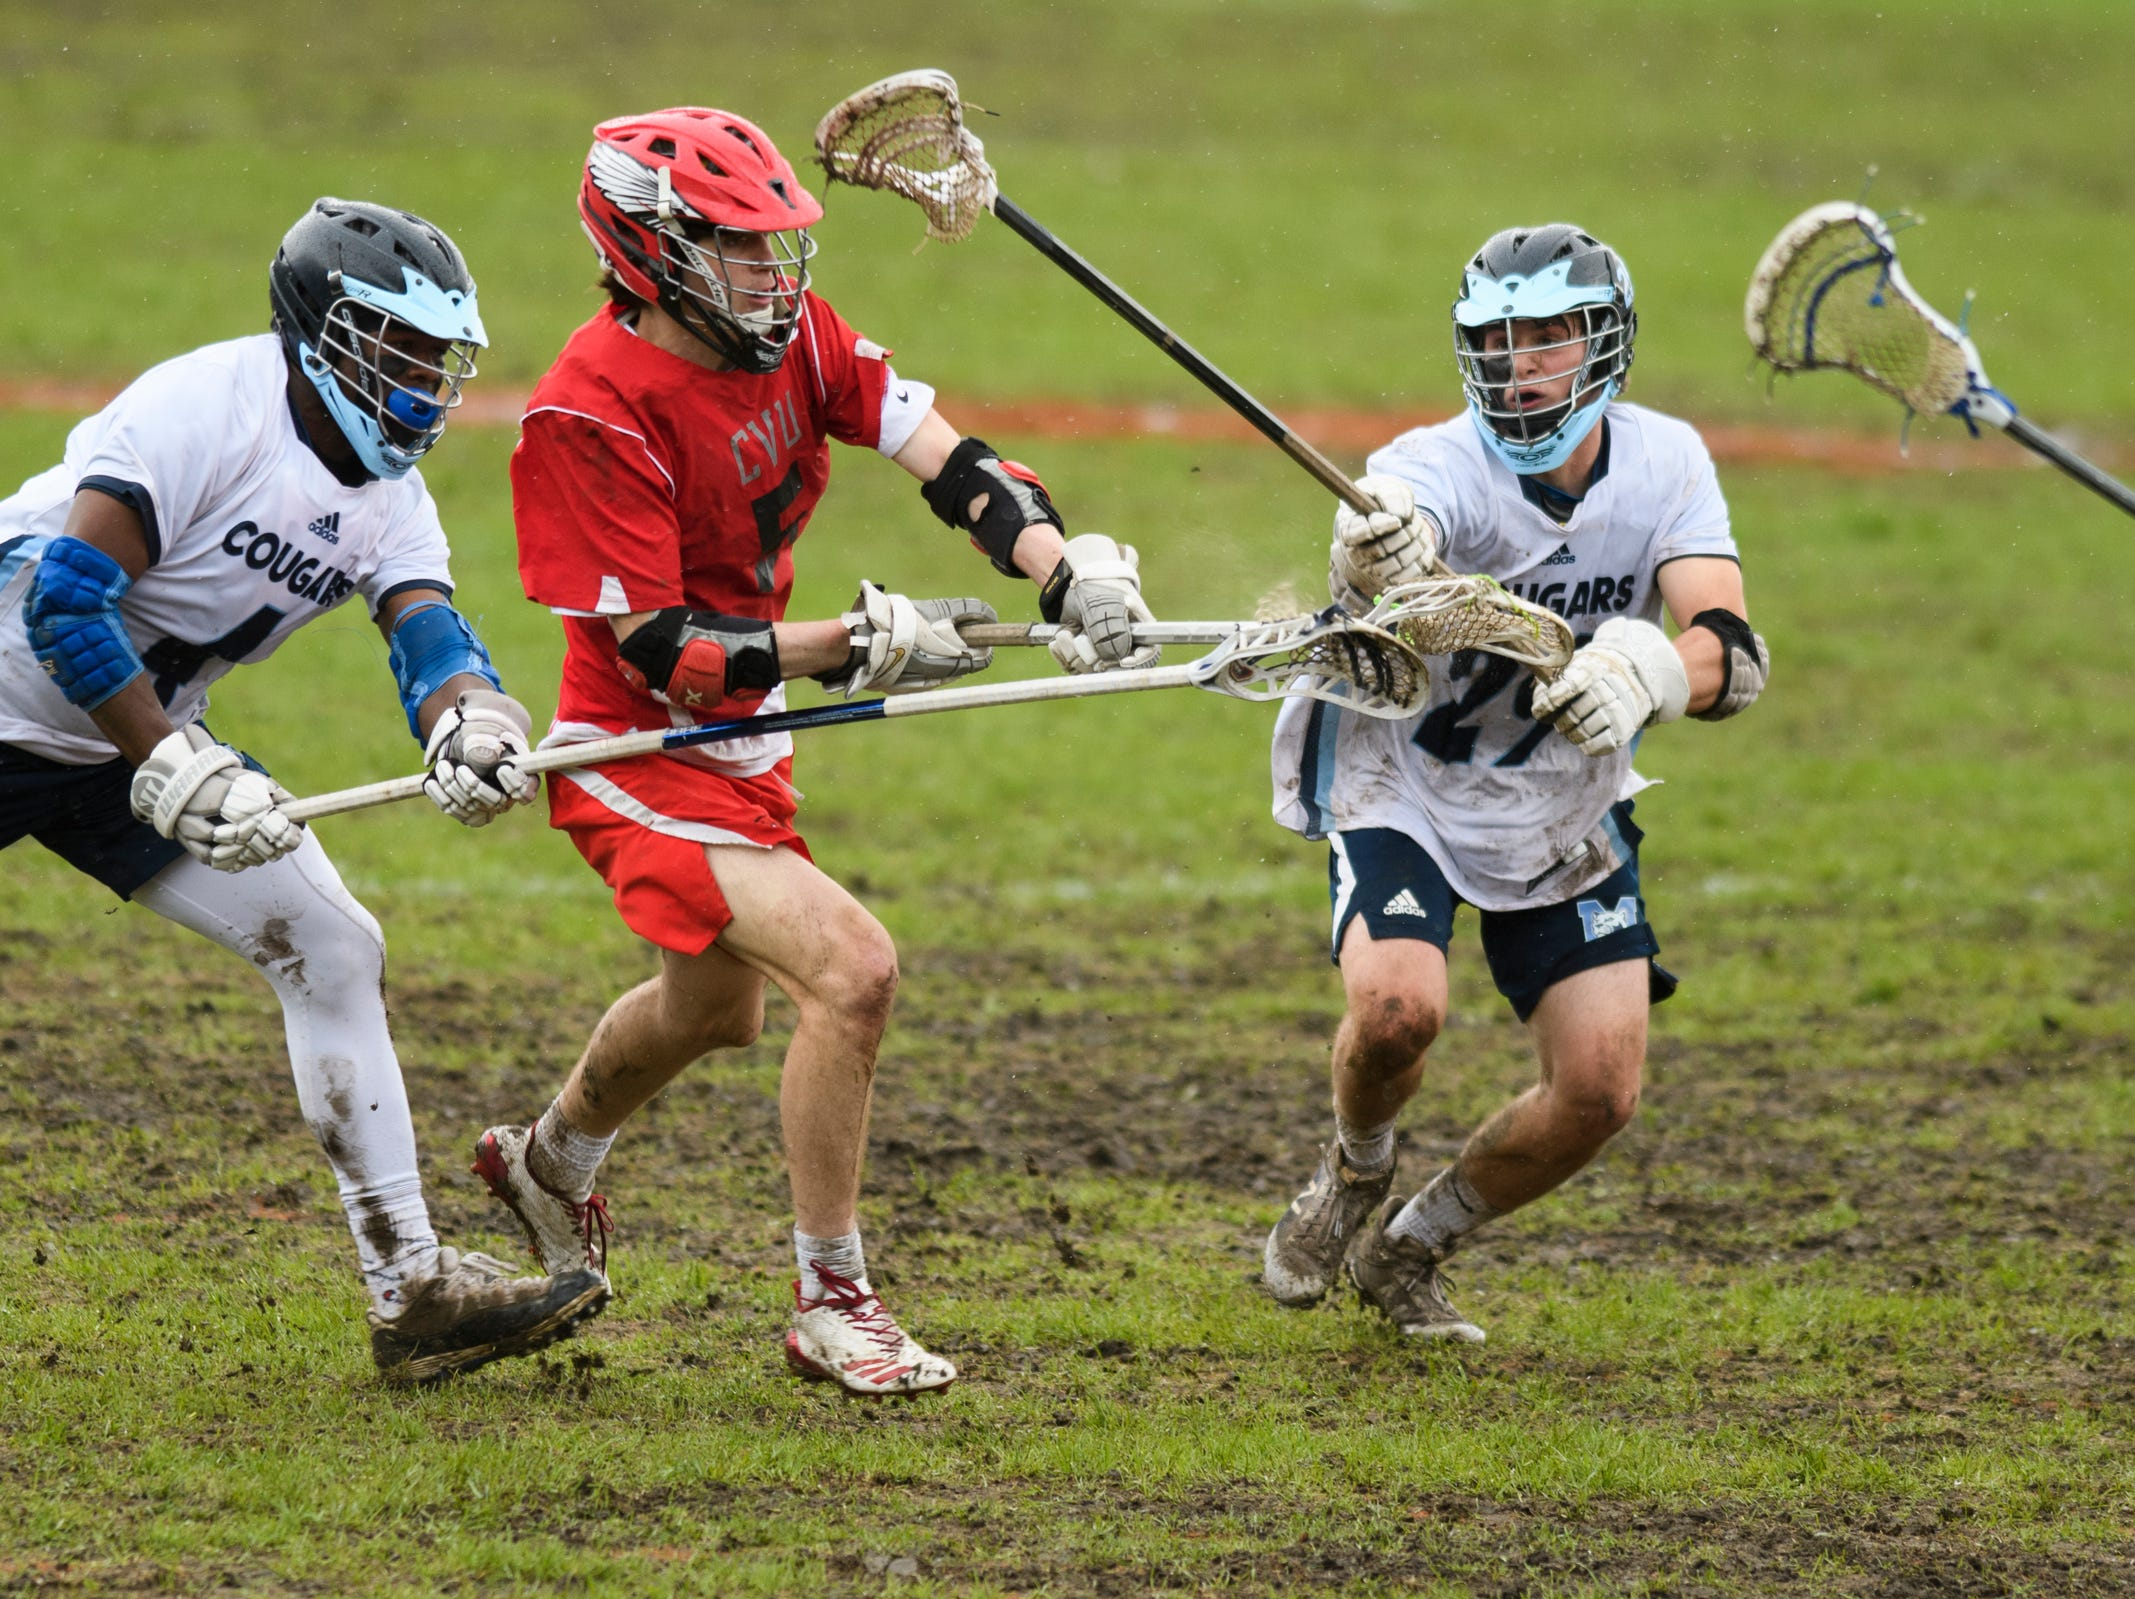 CVU's Jake Schaefer (5) shoots the ball during the boys lacrosse game between the Champlain Valley Union Redhawks and the Mount Mansfield Cougars at MMU High School on Tuesday afternoon May 14, 2019 in Jericho, Vermont.